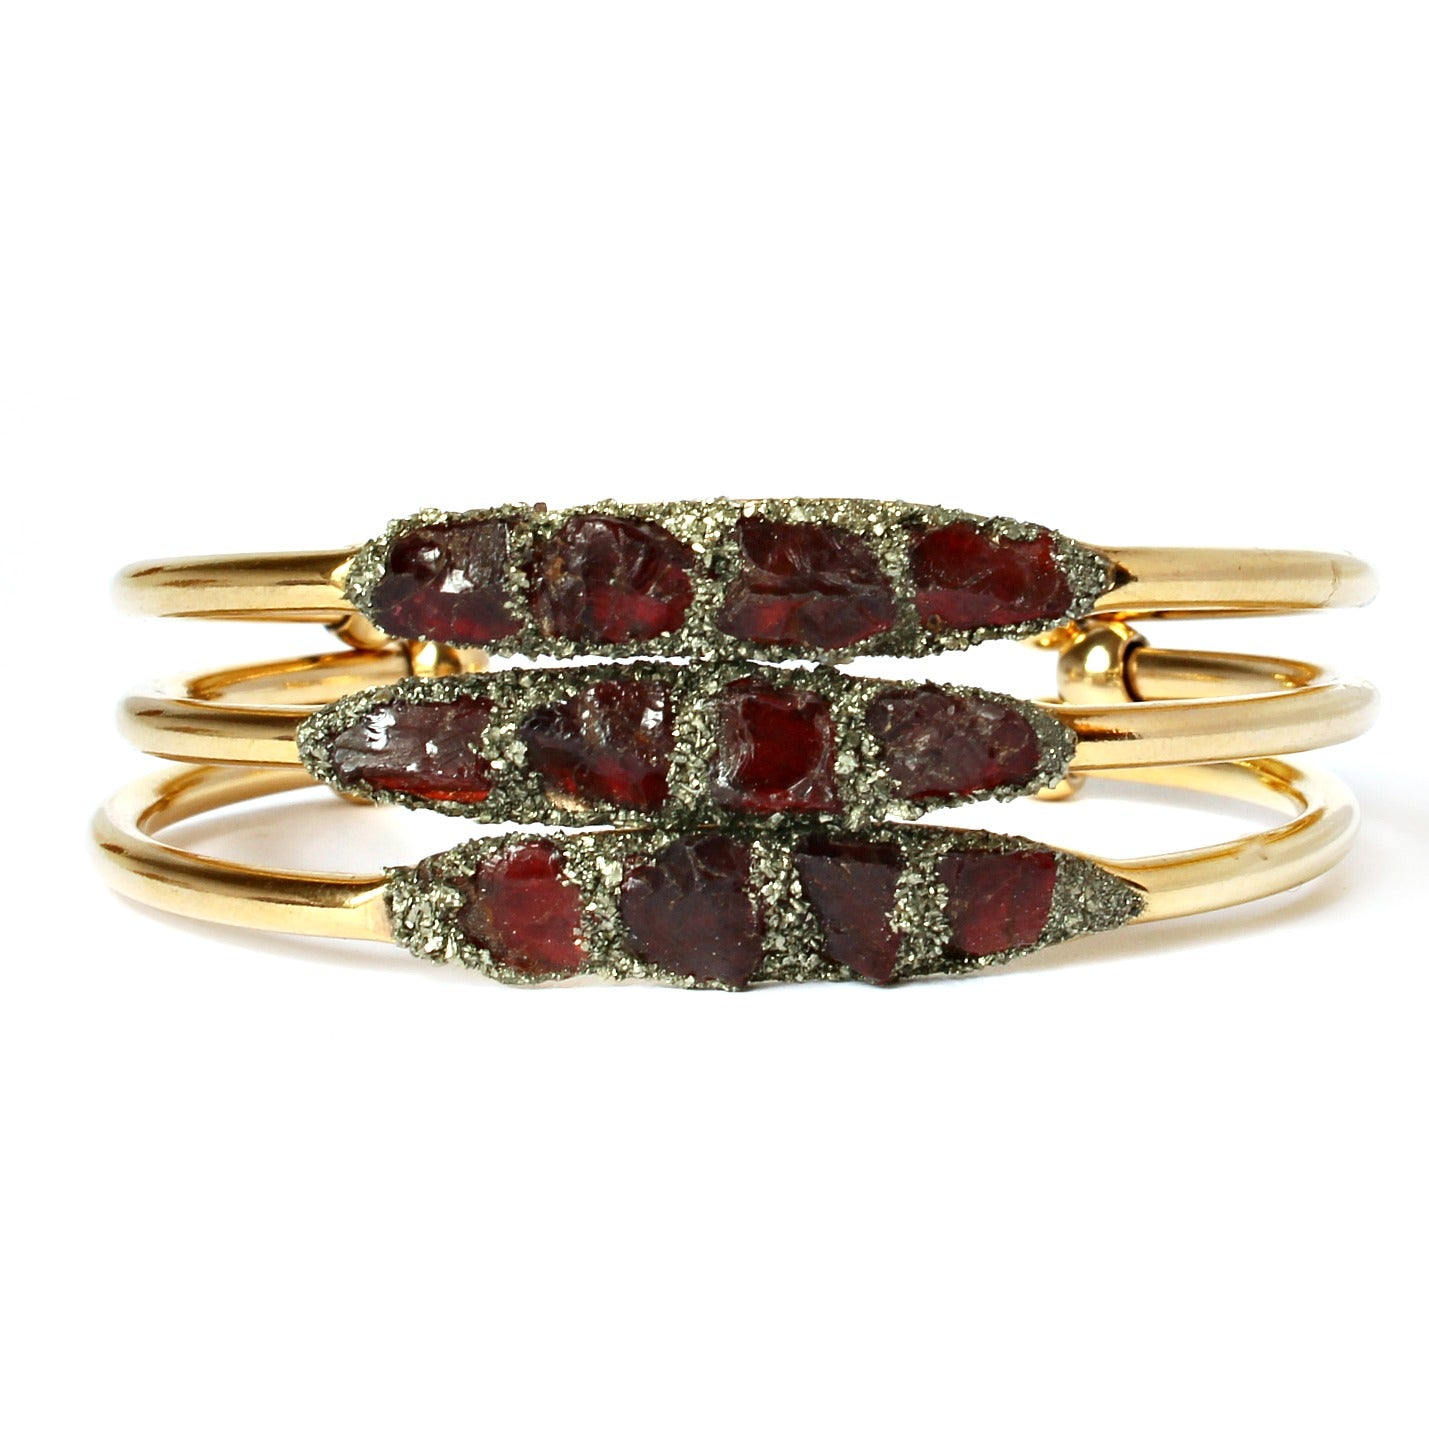 handmade stone garnet that product aroma pyrite jewelry with burgundy black spinel bracelet store red gemstone dark beaded